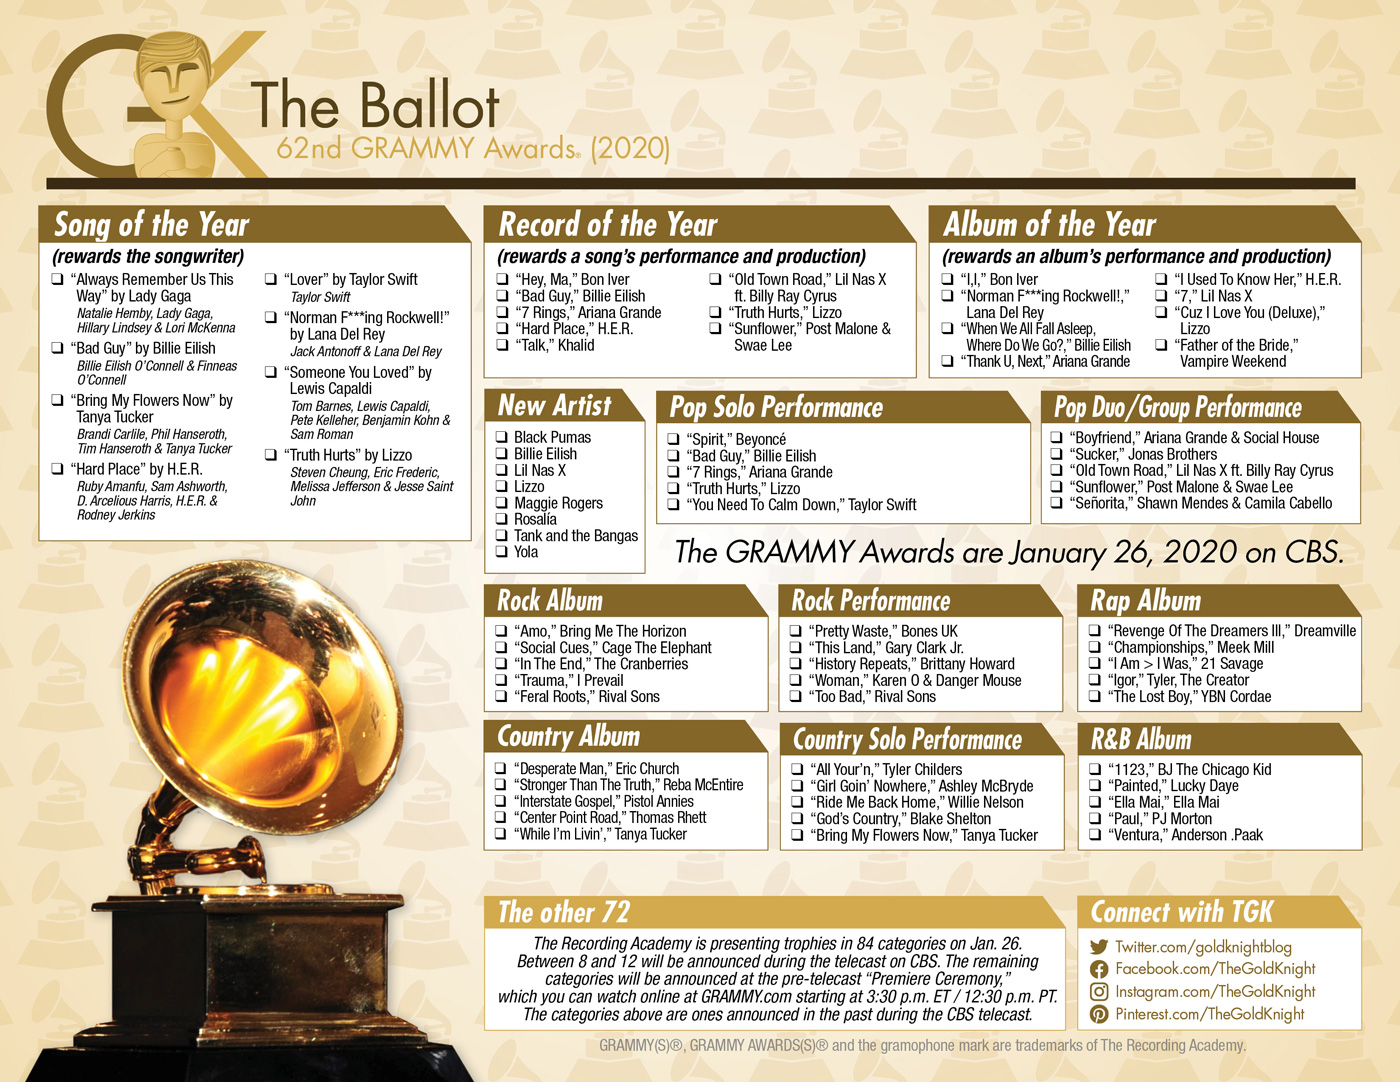 62nd Grammy Awards Printable Ballot 2020 The Gold